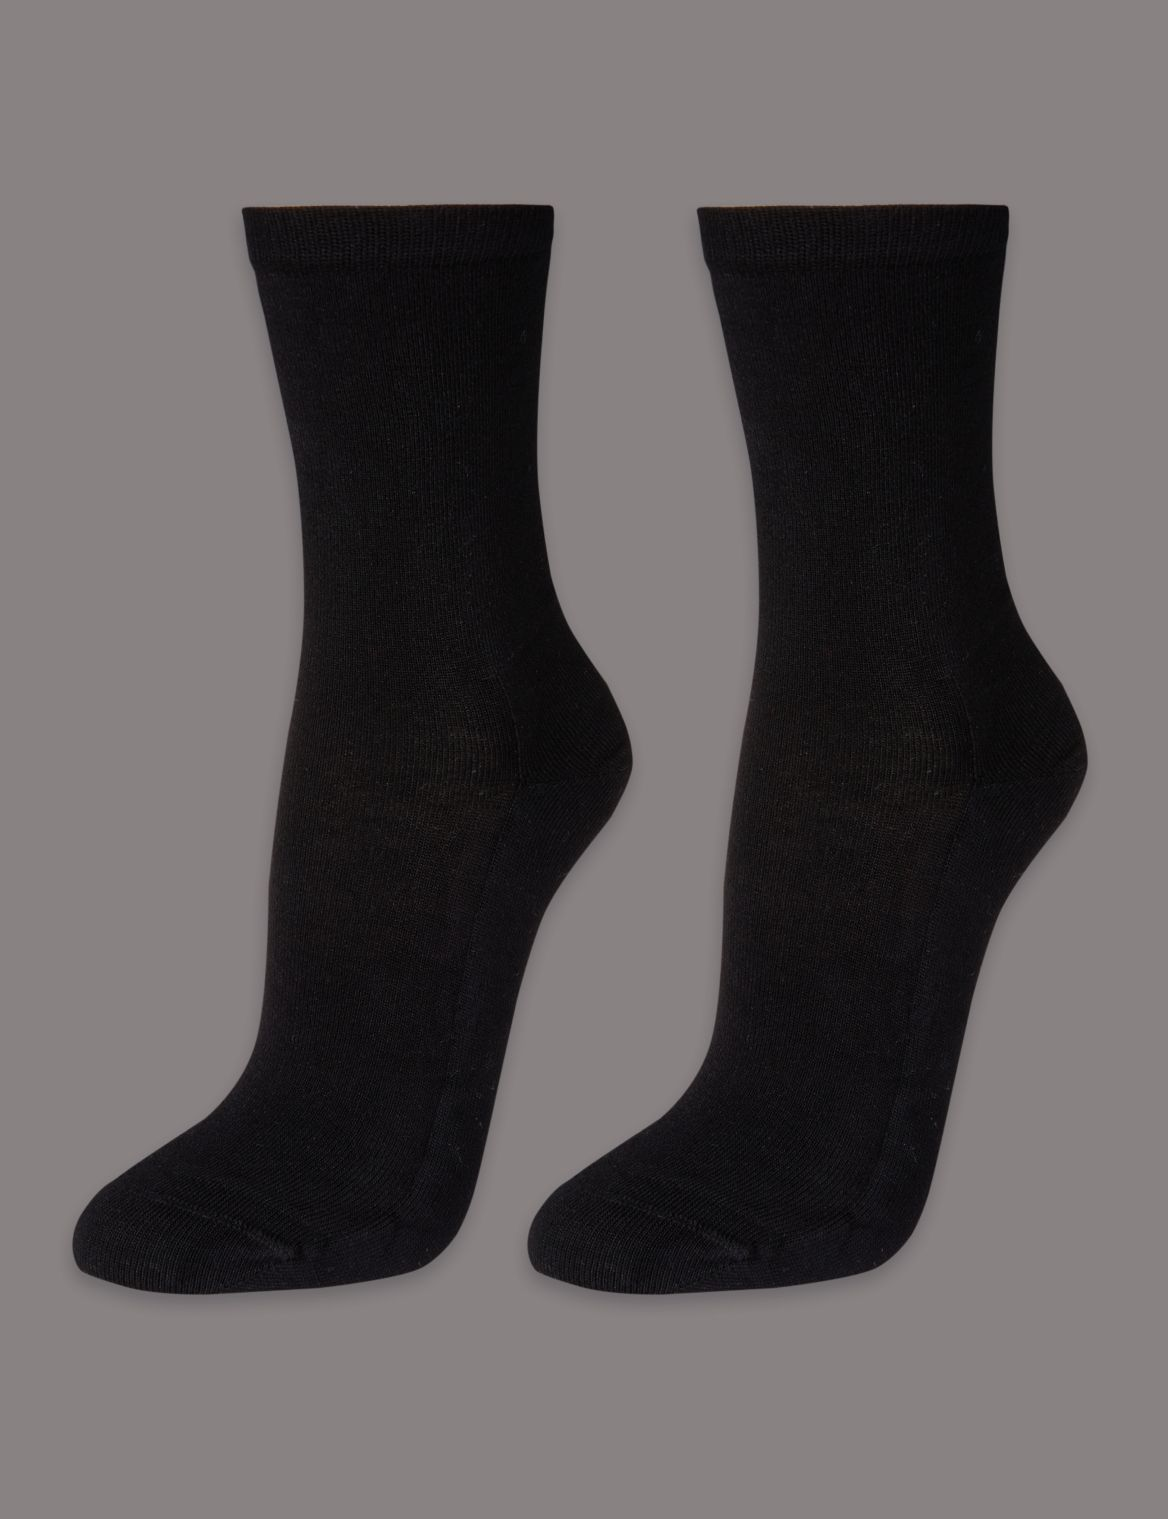 2 Pair Pack Ankle High Socks black mix